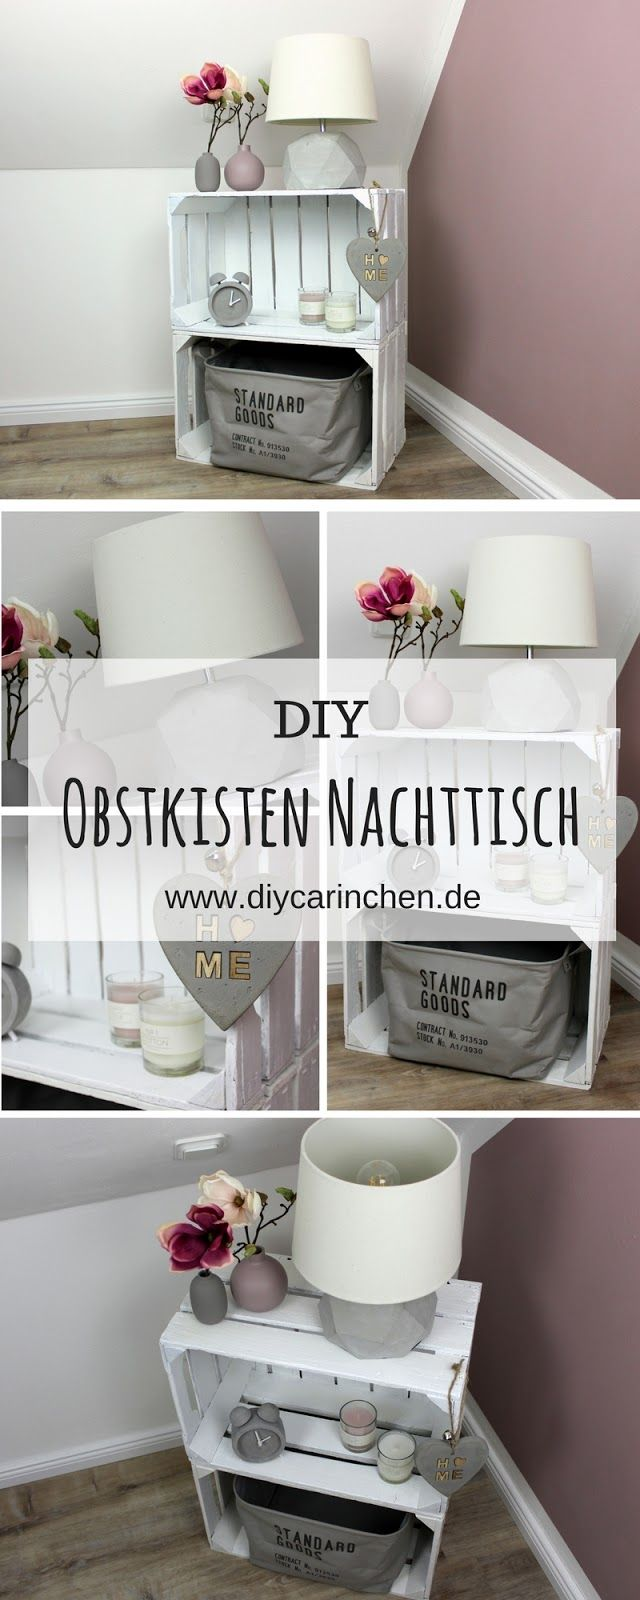 diy m bel selber bauen nachttisch nachtschrank aus obstkisten ganz easy selber machen diy. Black Bedroom Furniture Sets. Home Design Ideas